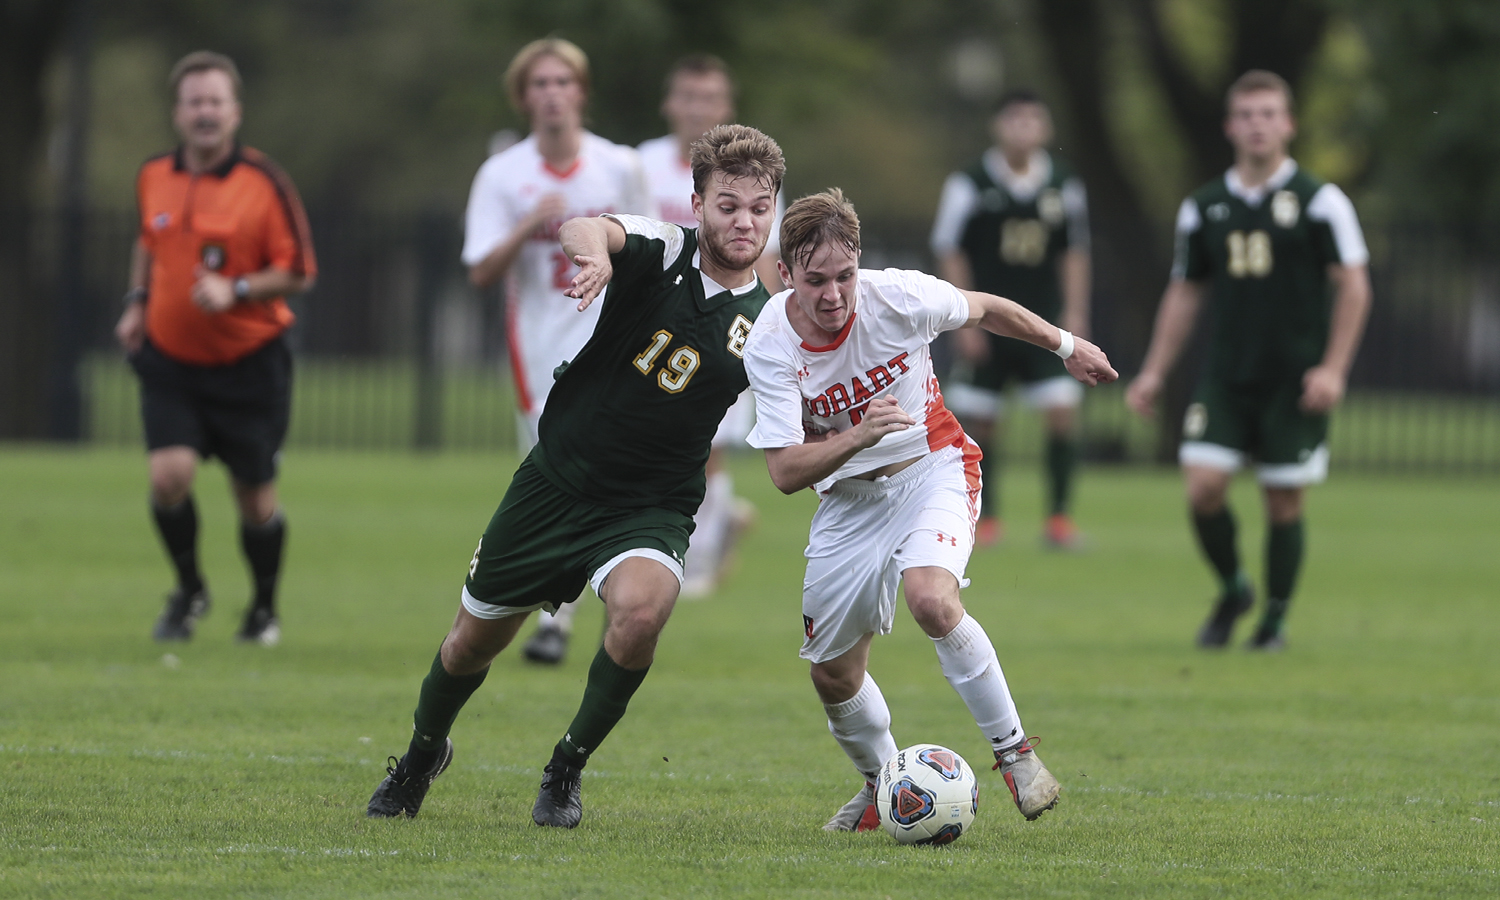 Nary Cary '20 passes a defender during Hobart's 1-0 victory over Clarkson College.